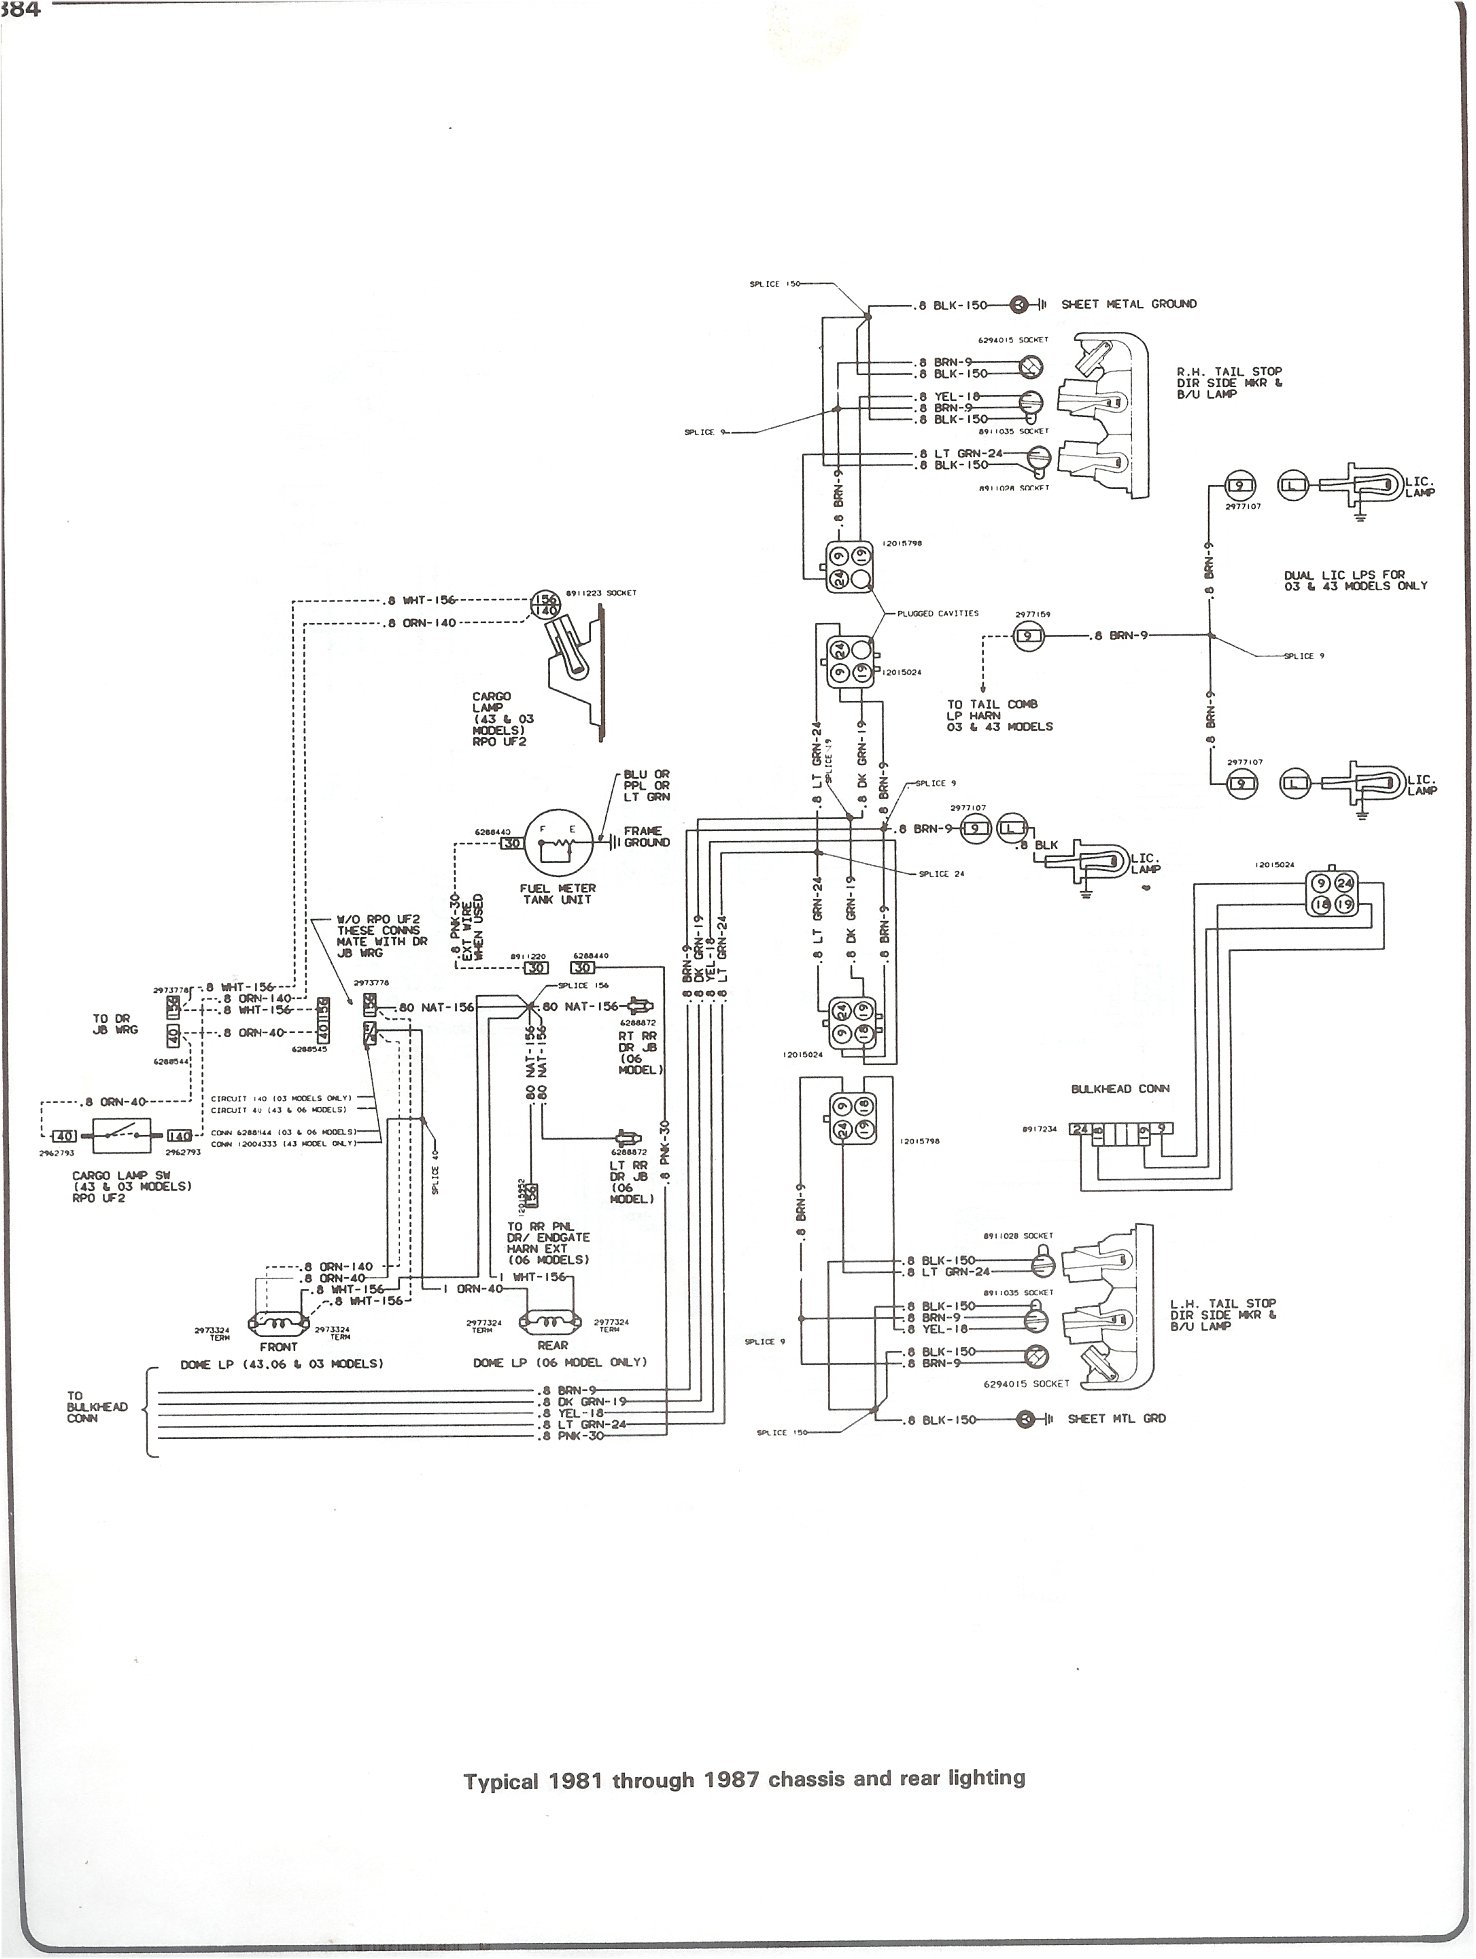 81 87_chass_rr_light complete 73 87 wiring diagrams 1988 GMC Sierra 1500 at virtualis.co